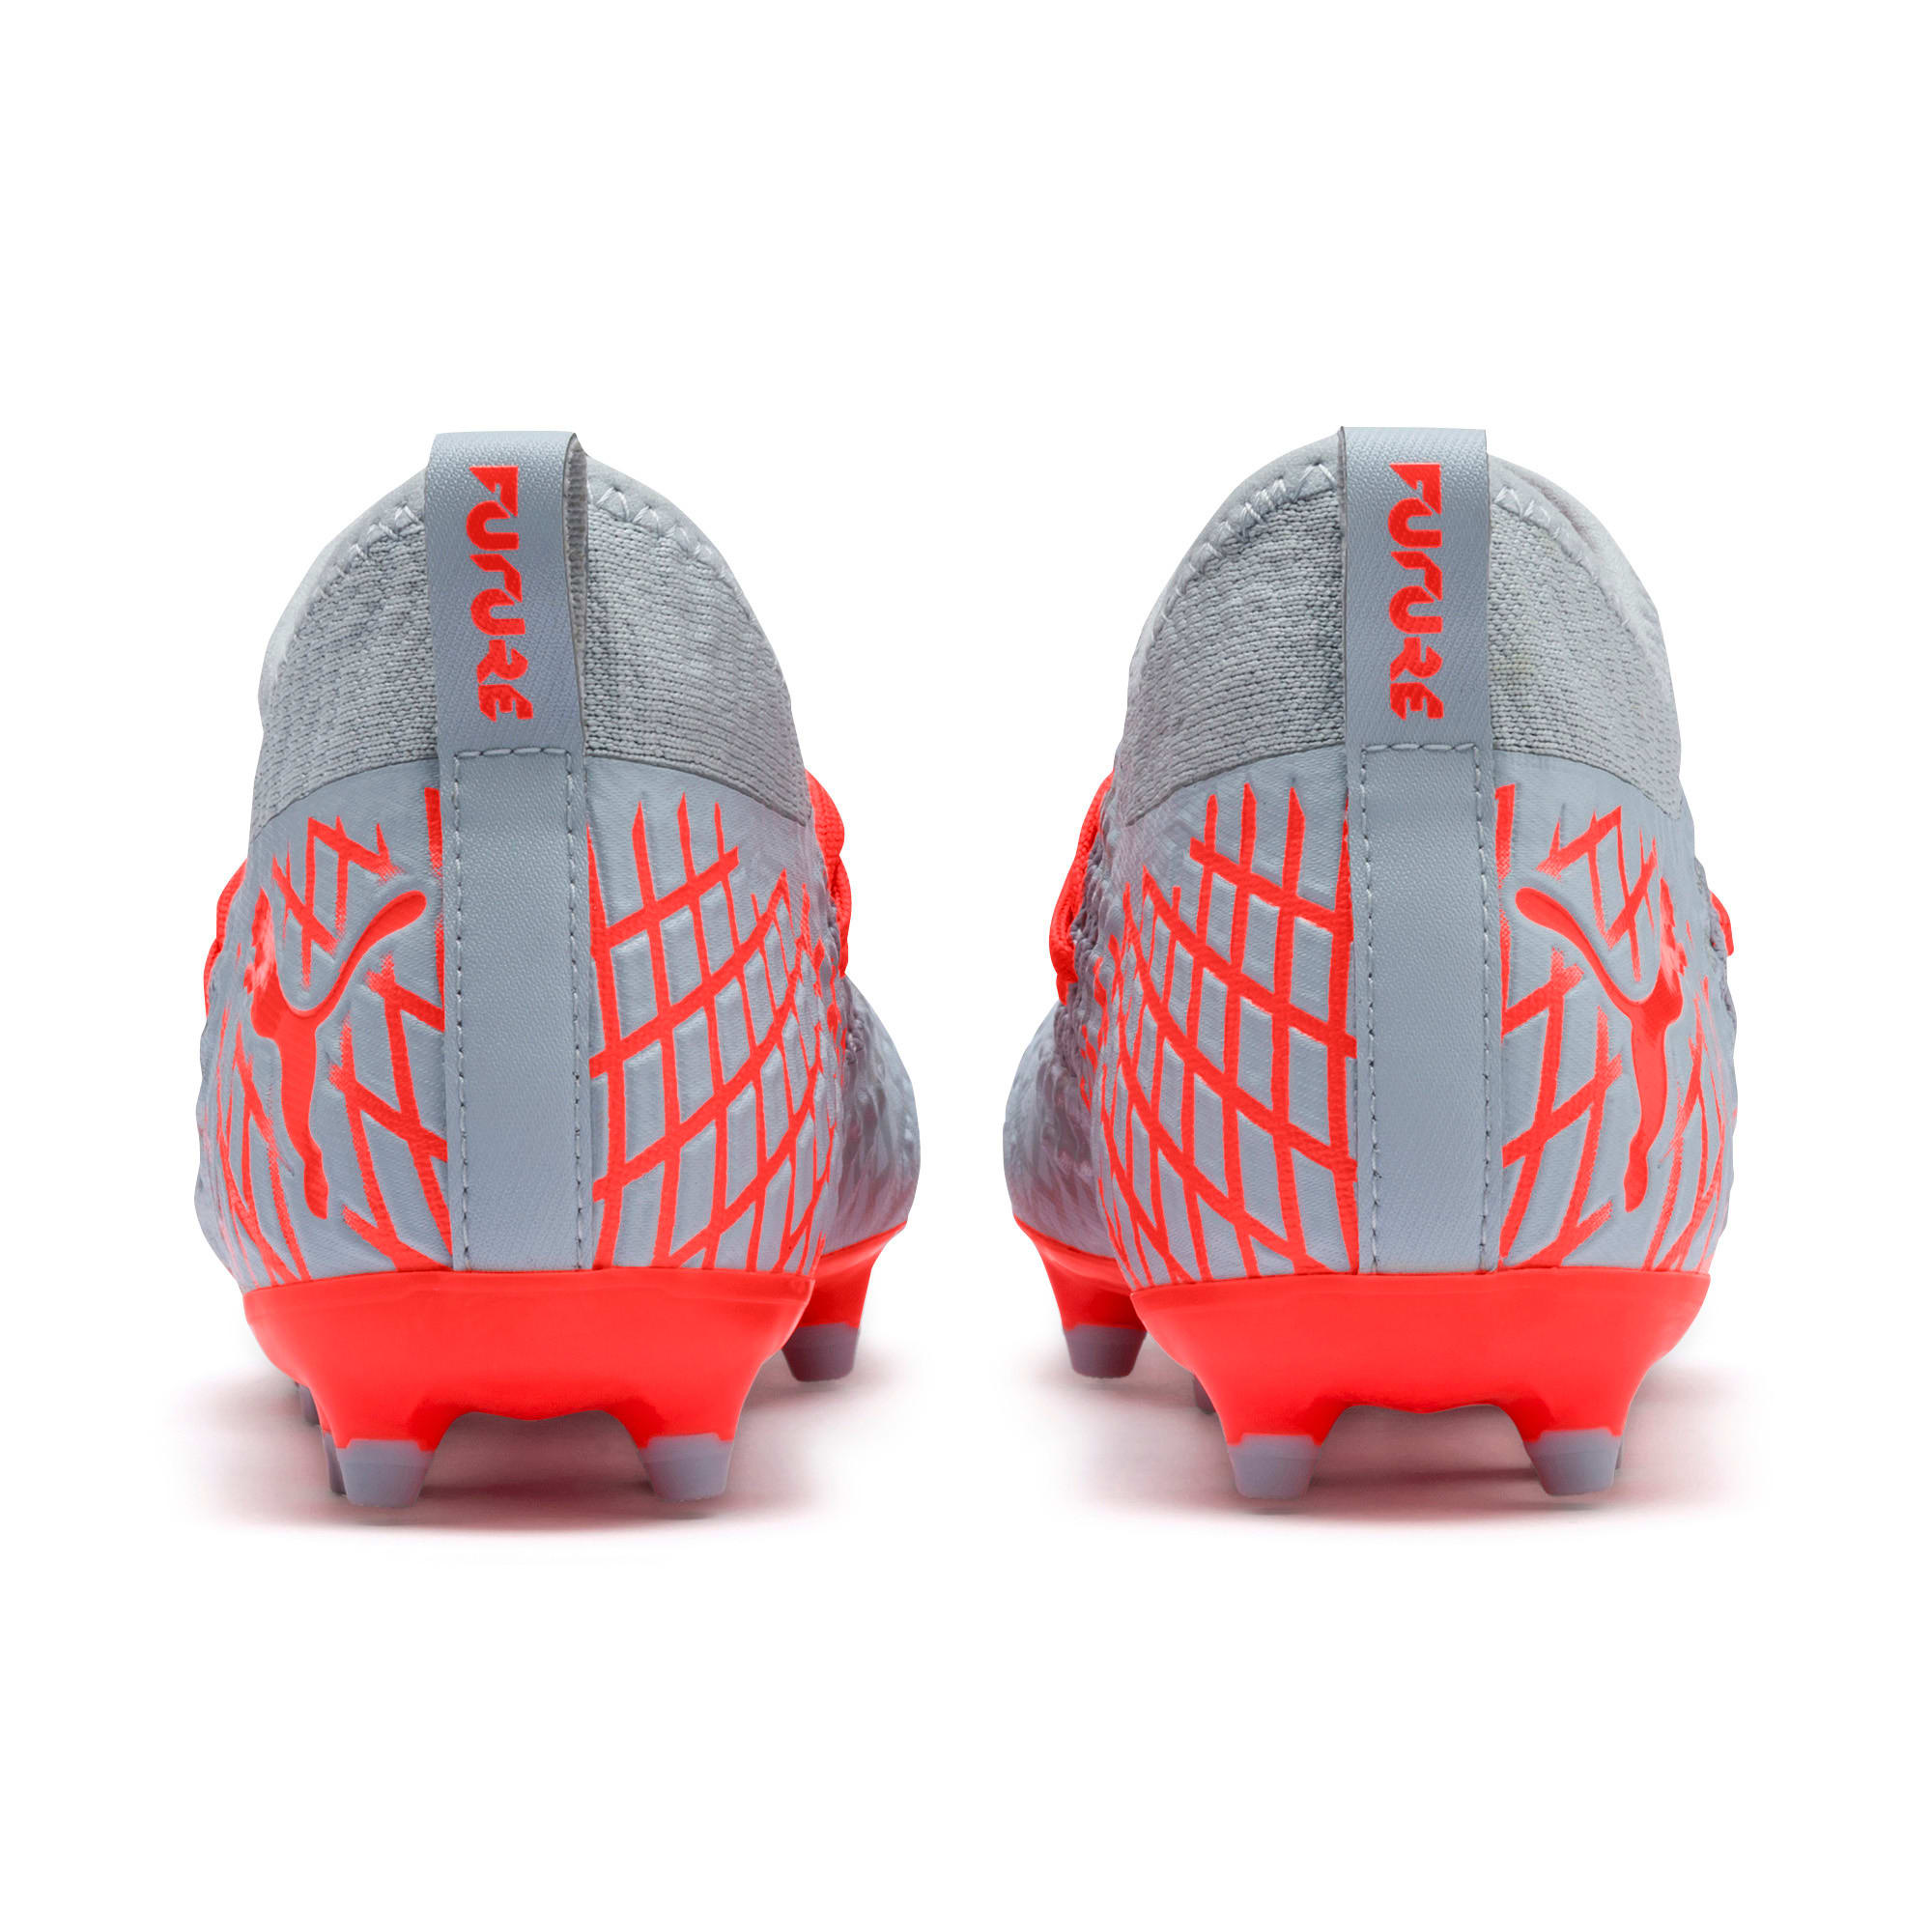 Thumbnail 3 of FUTURE 4.3 NETFIT Youth FG/AG Football Boots, Glacial Blue-Nrgy Red, medium